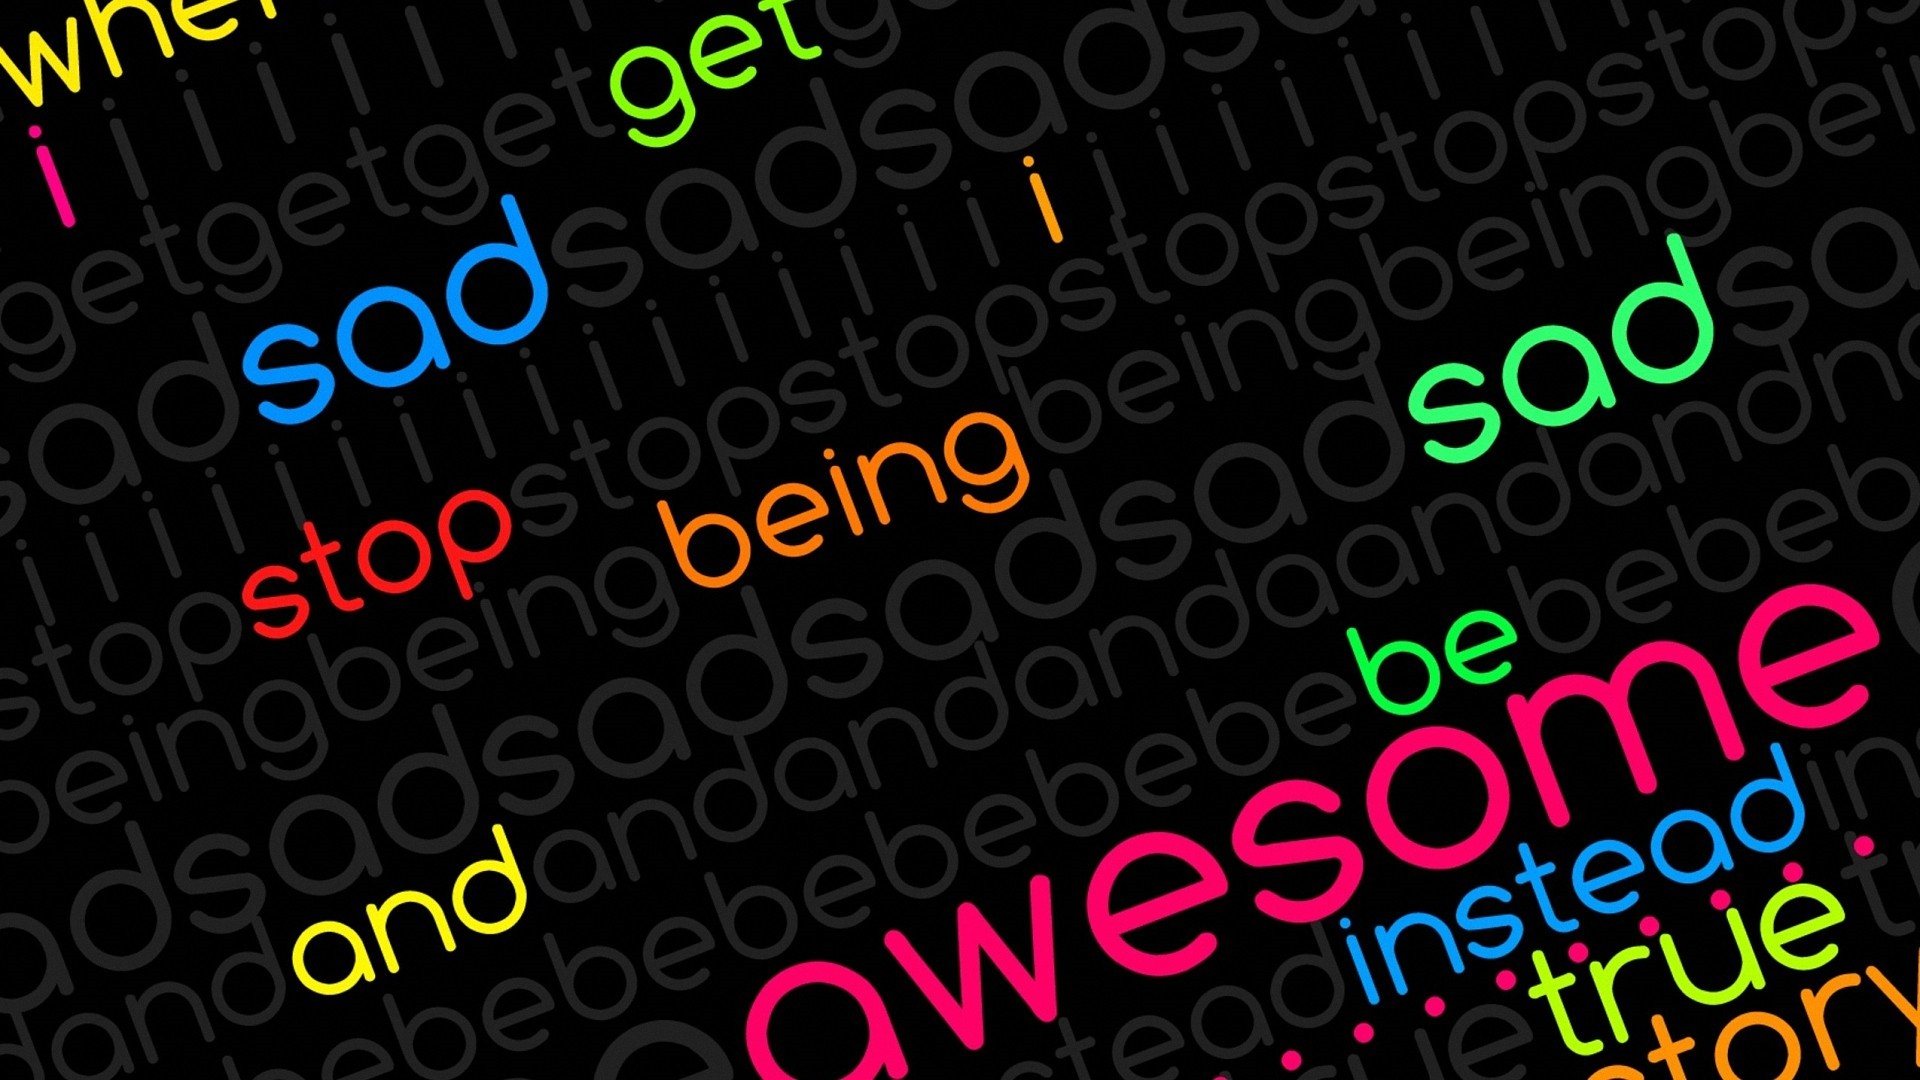 With Words Download Wallpaper